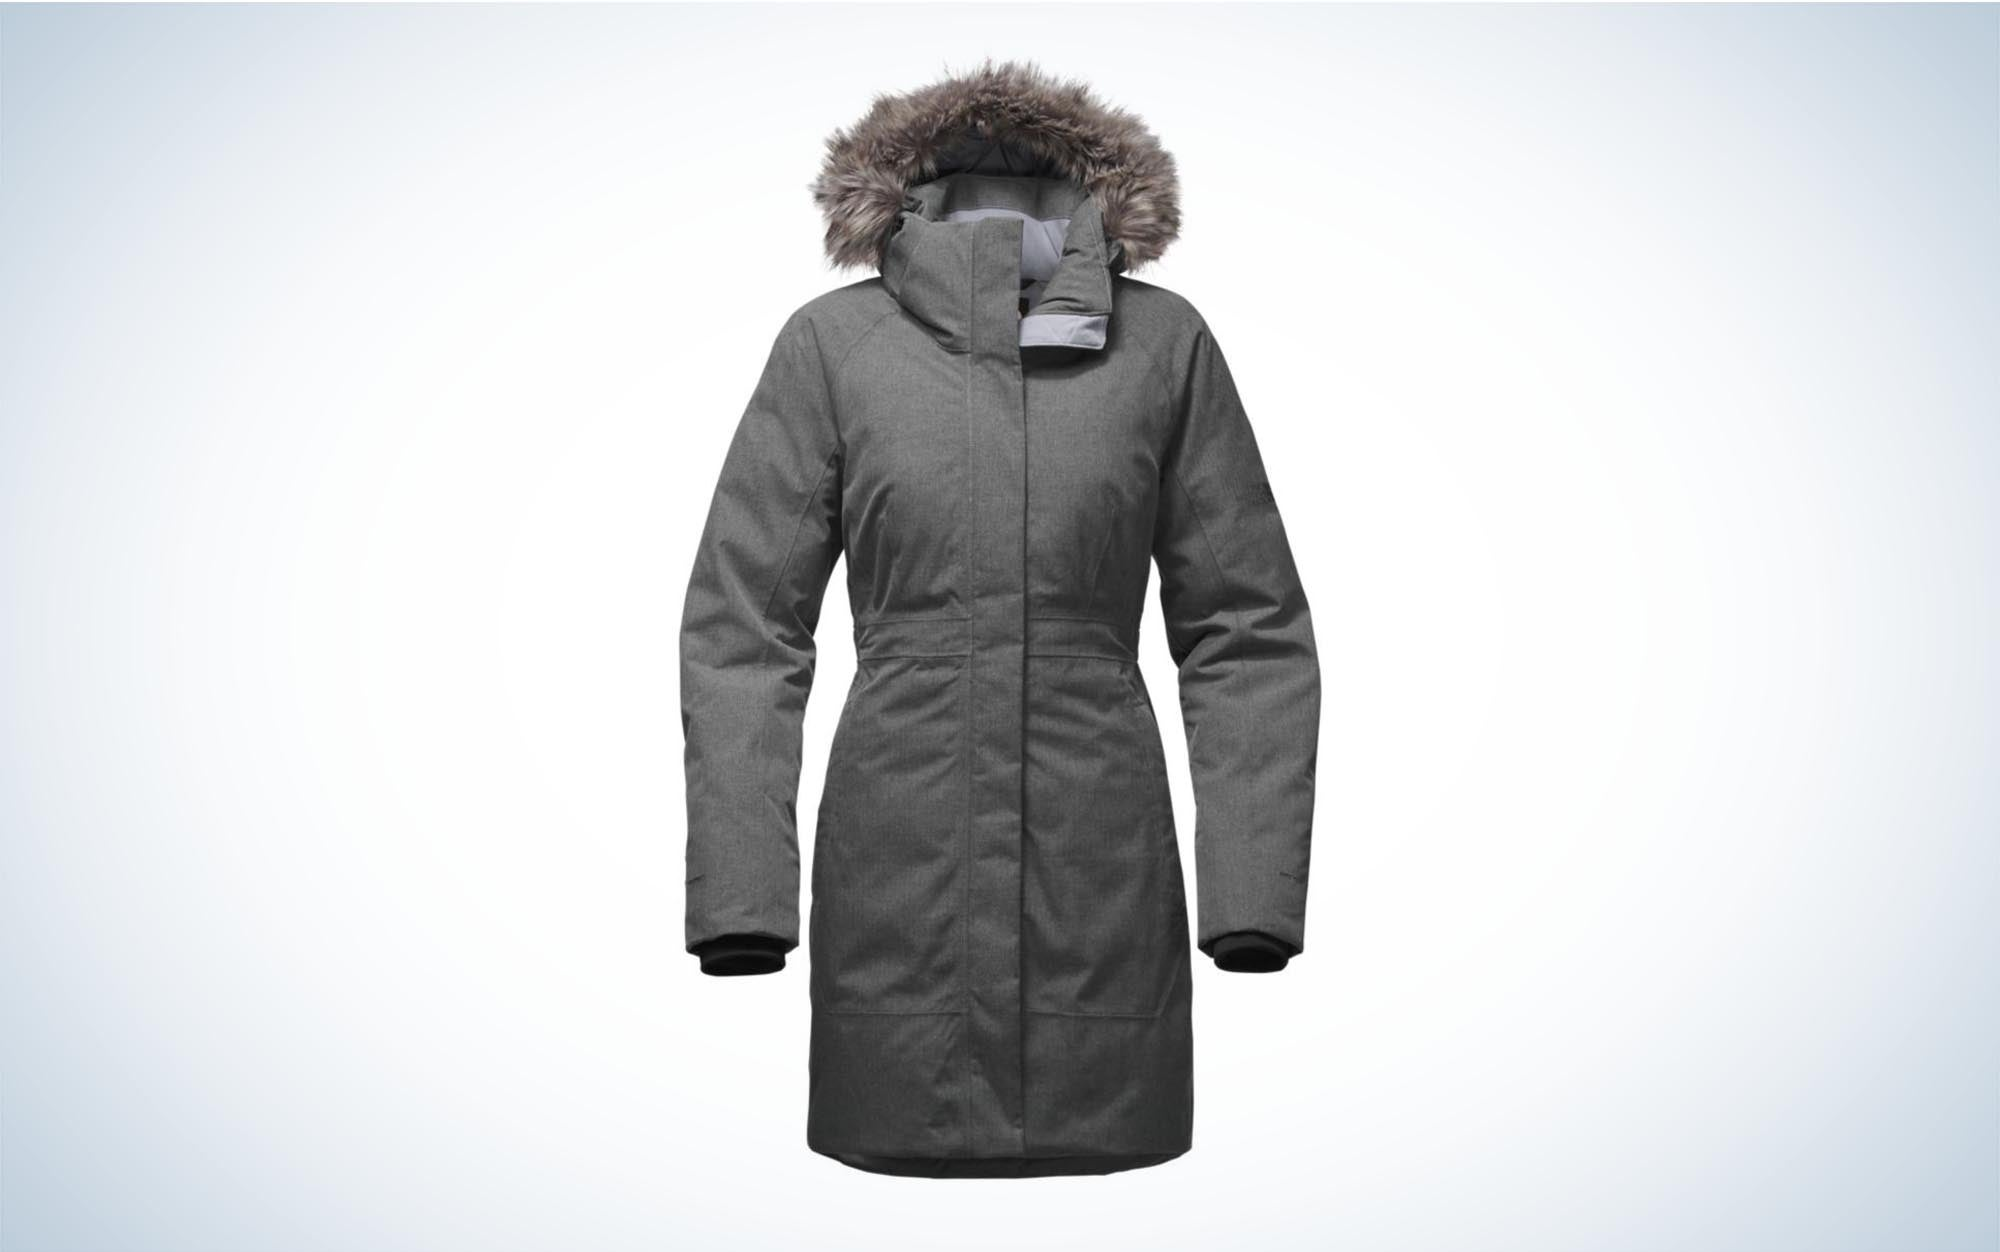 The North Face Arctic Insulated Parka